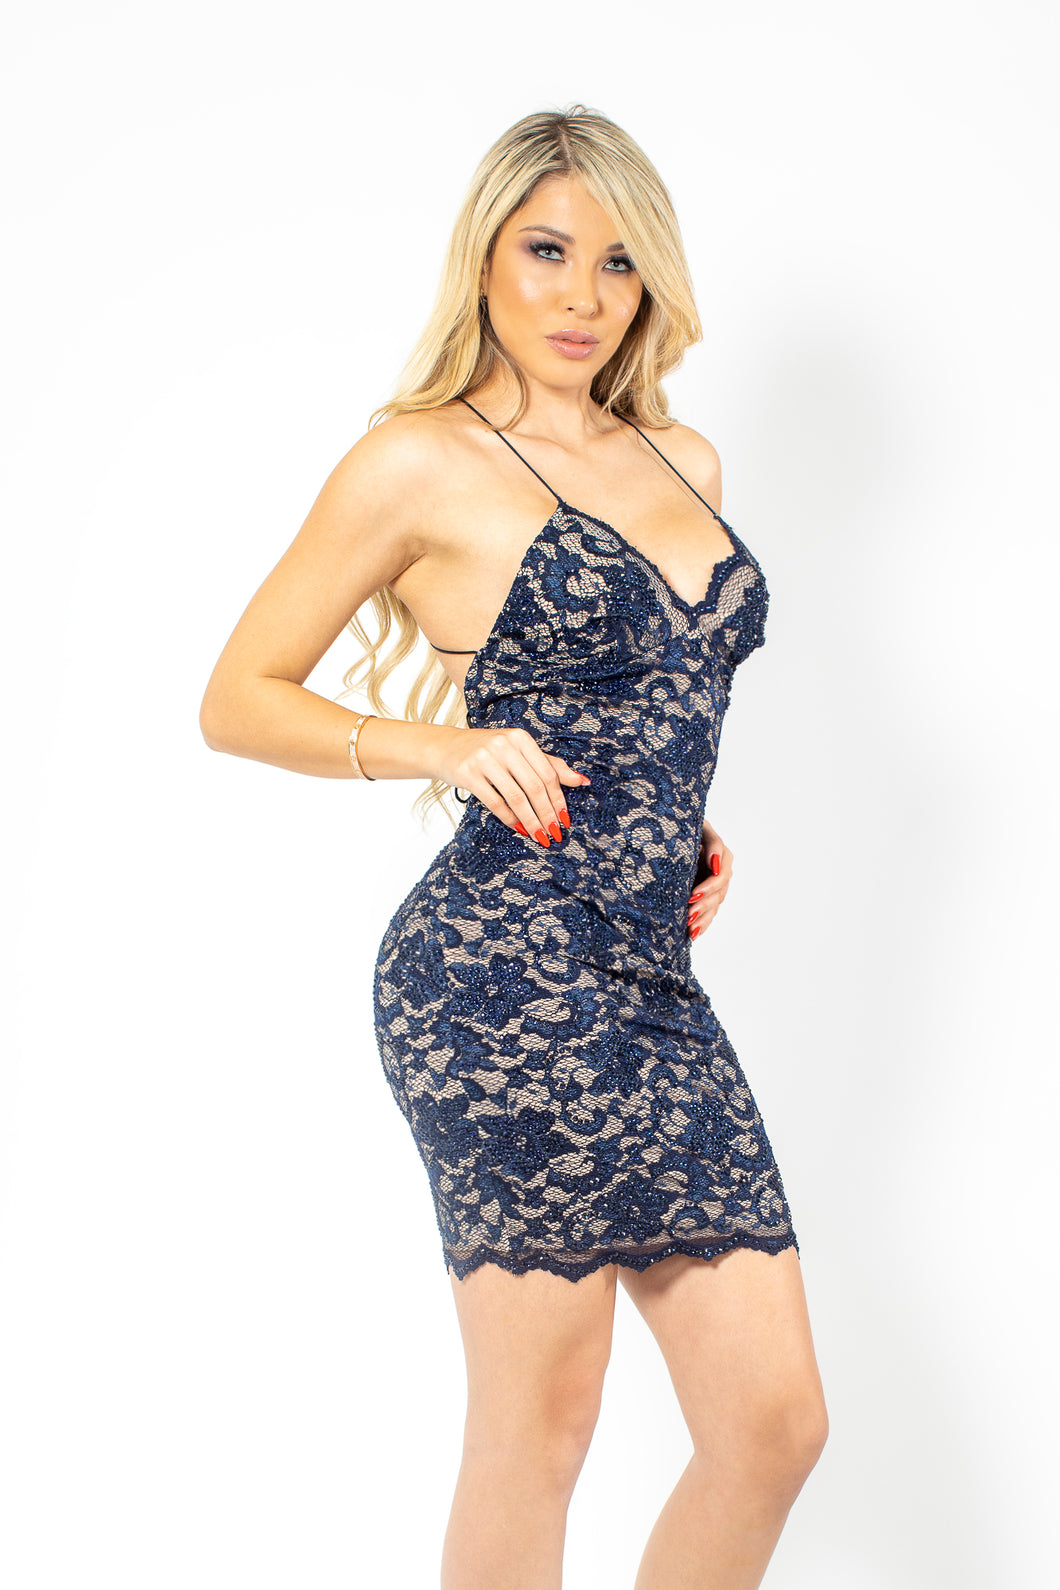 Naylet Full Crystal Navy Blue Cocktail Dress - BACCIO Couture